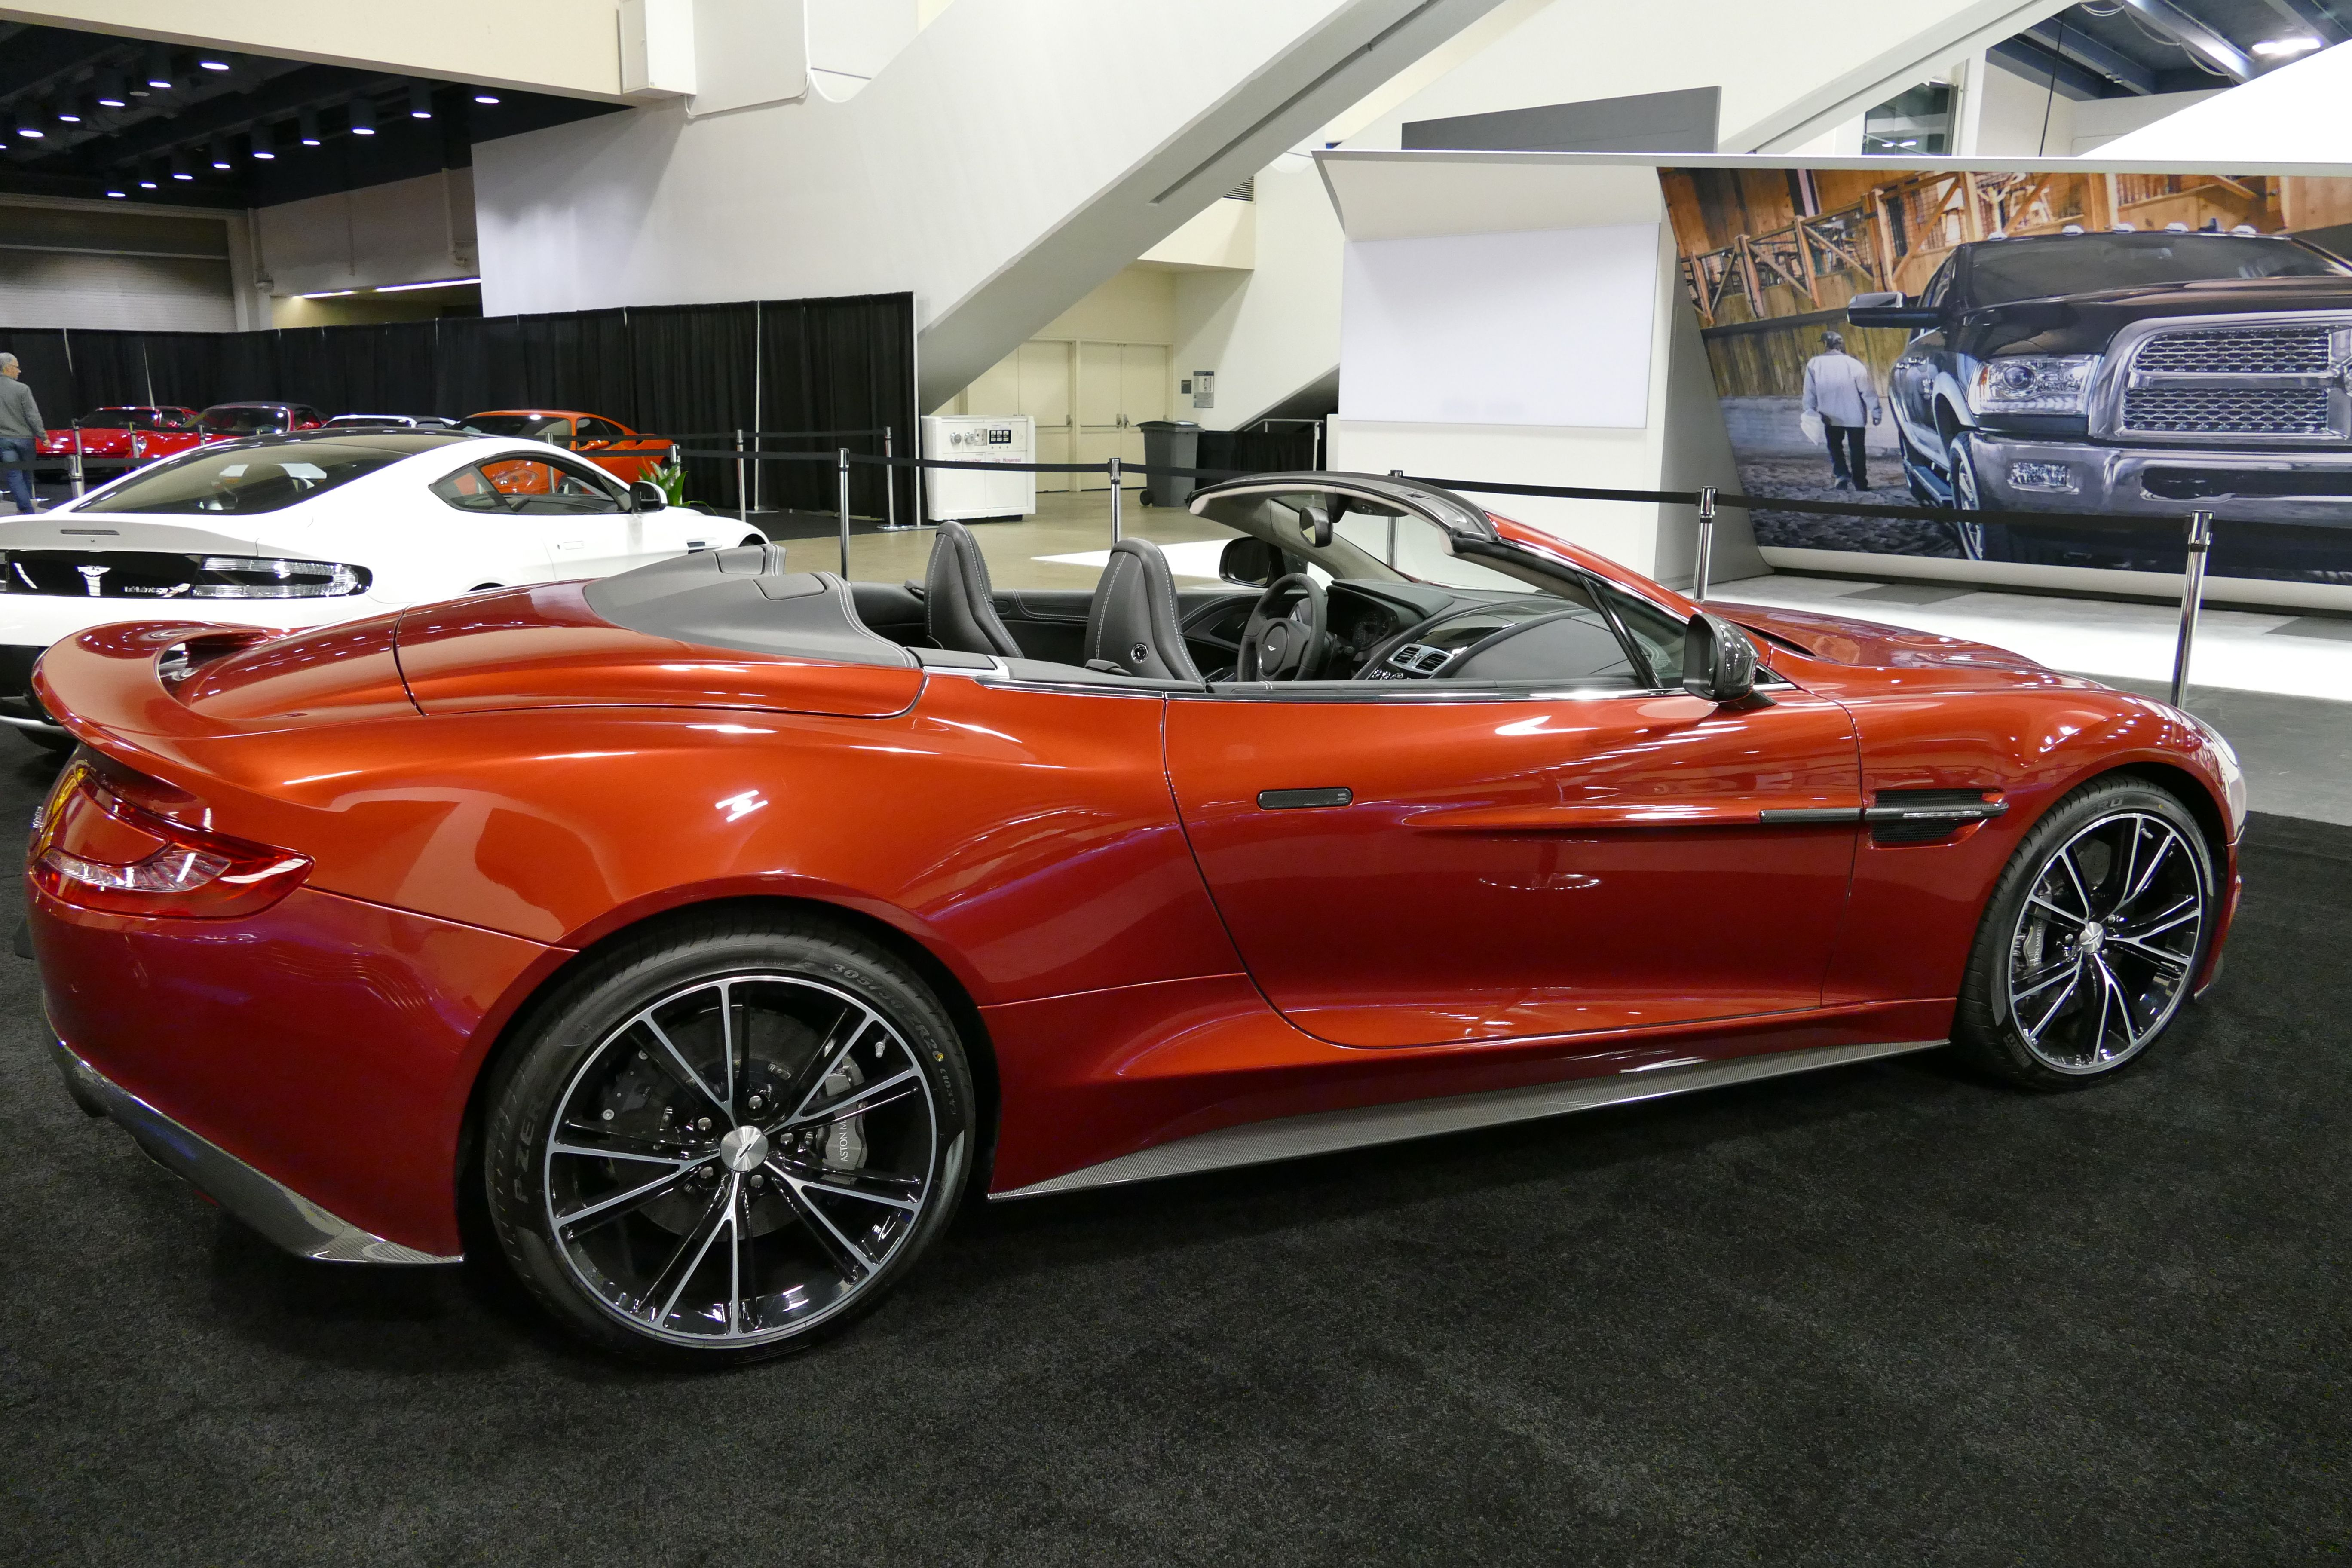 SF Auto ShowLast Day To See Worlds Most Expensive Cars Bay Area - Moscone car show